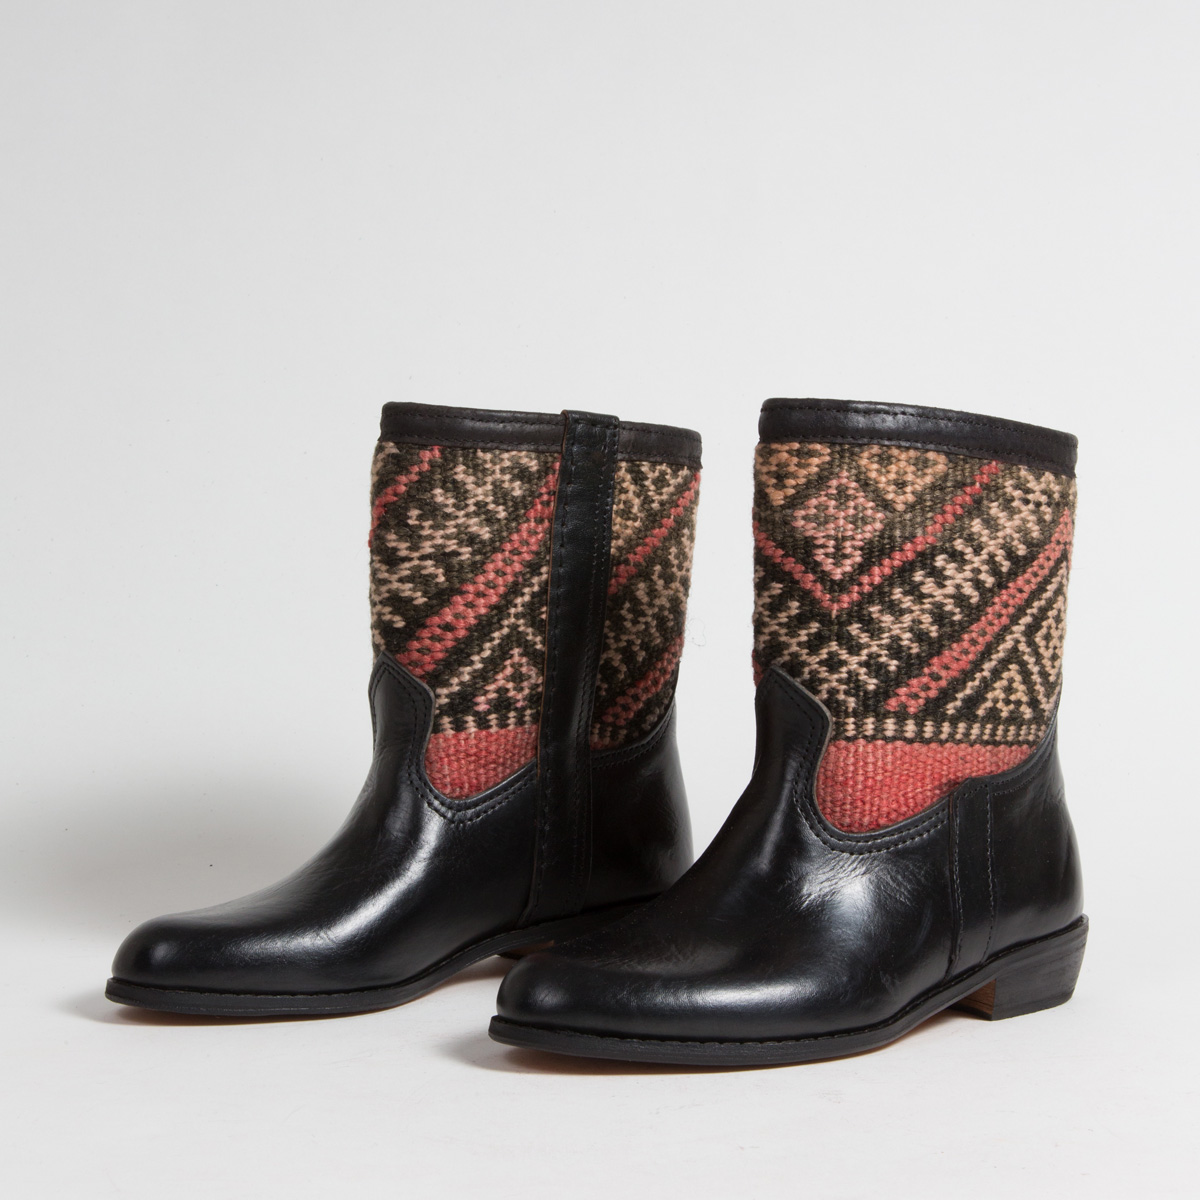 Bottines Kilim - images/kilim/bottines/rpn7-01-38-kilim-artisanat-cuir-ethnique-marocaine-bottine-femme-s.jpg